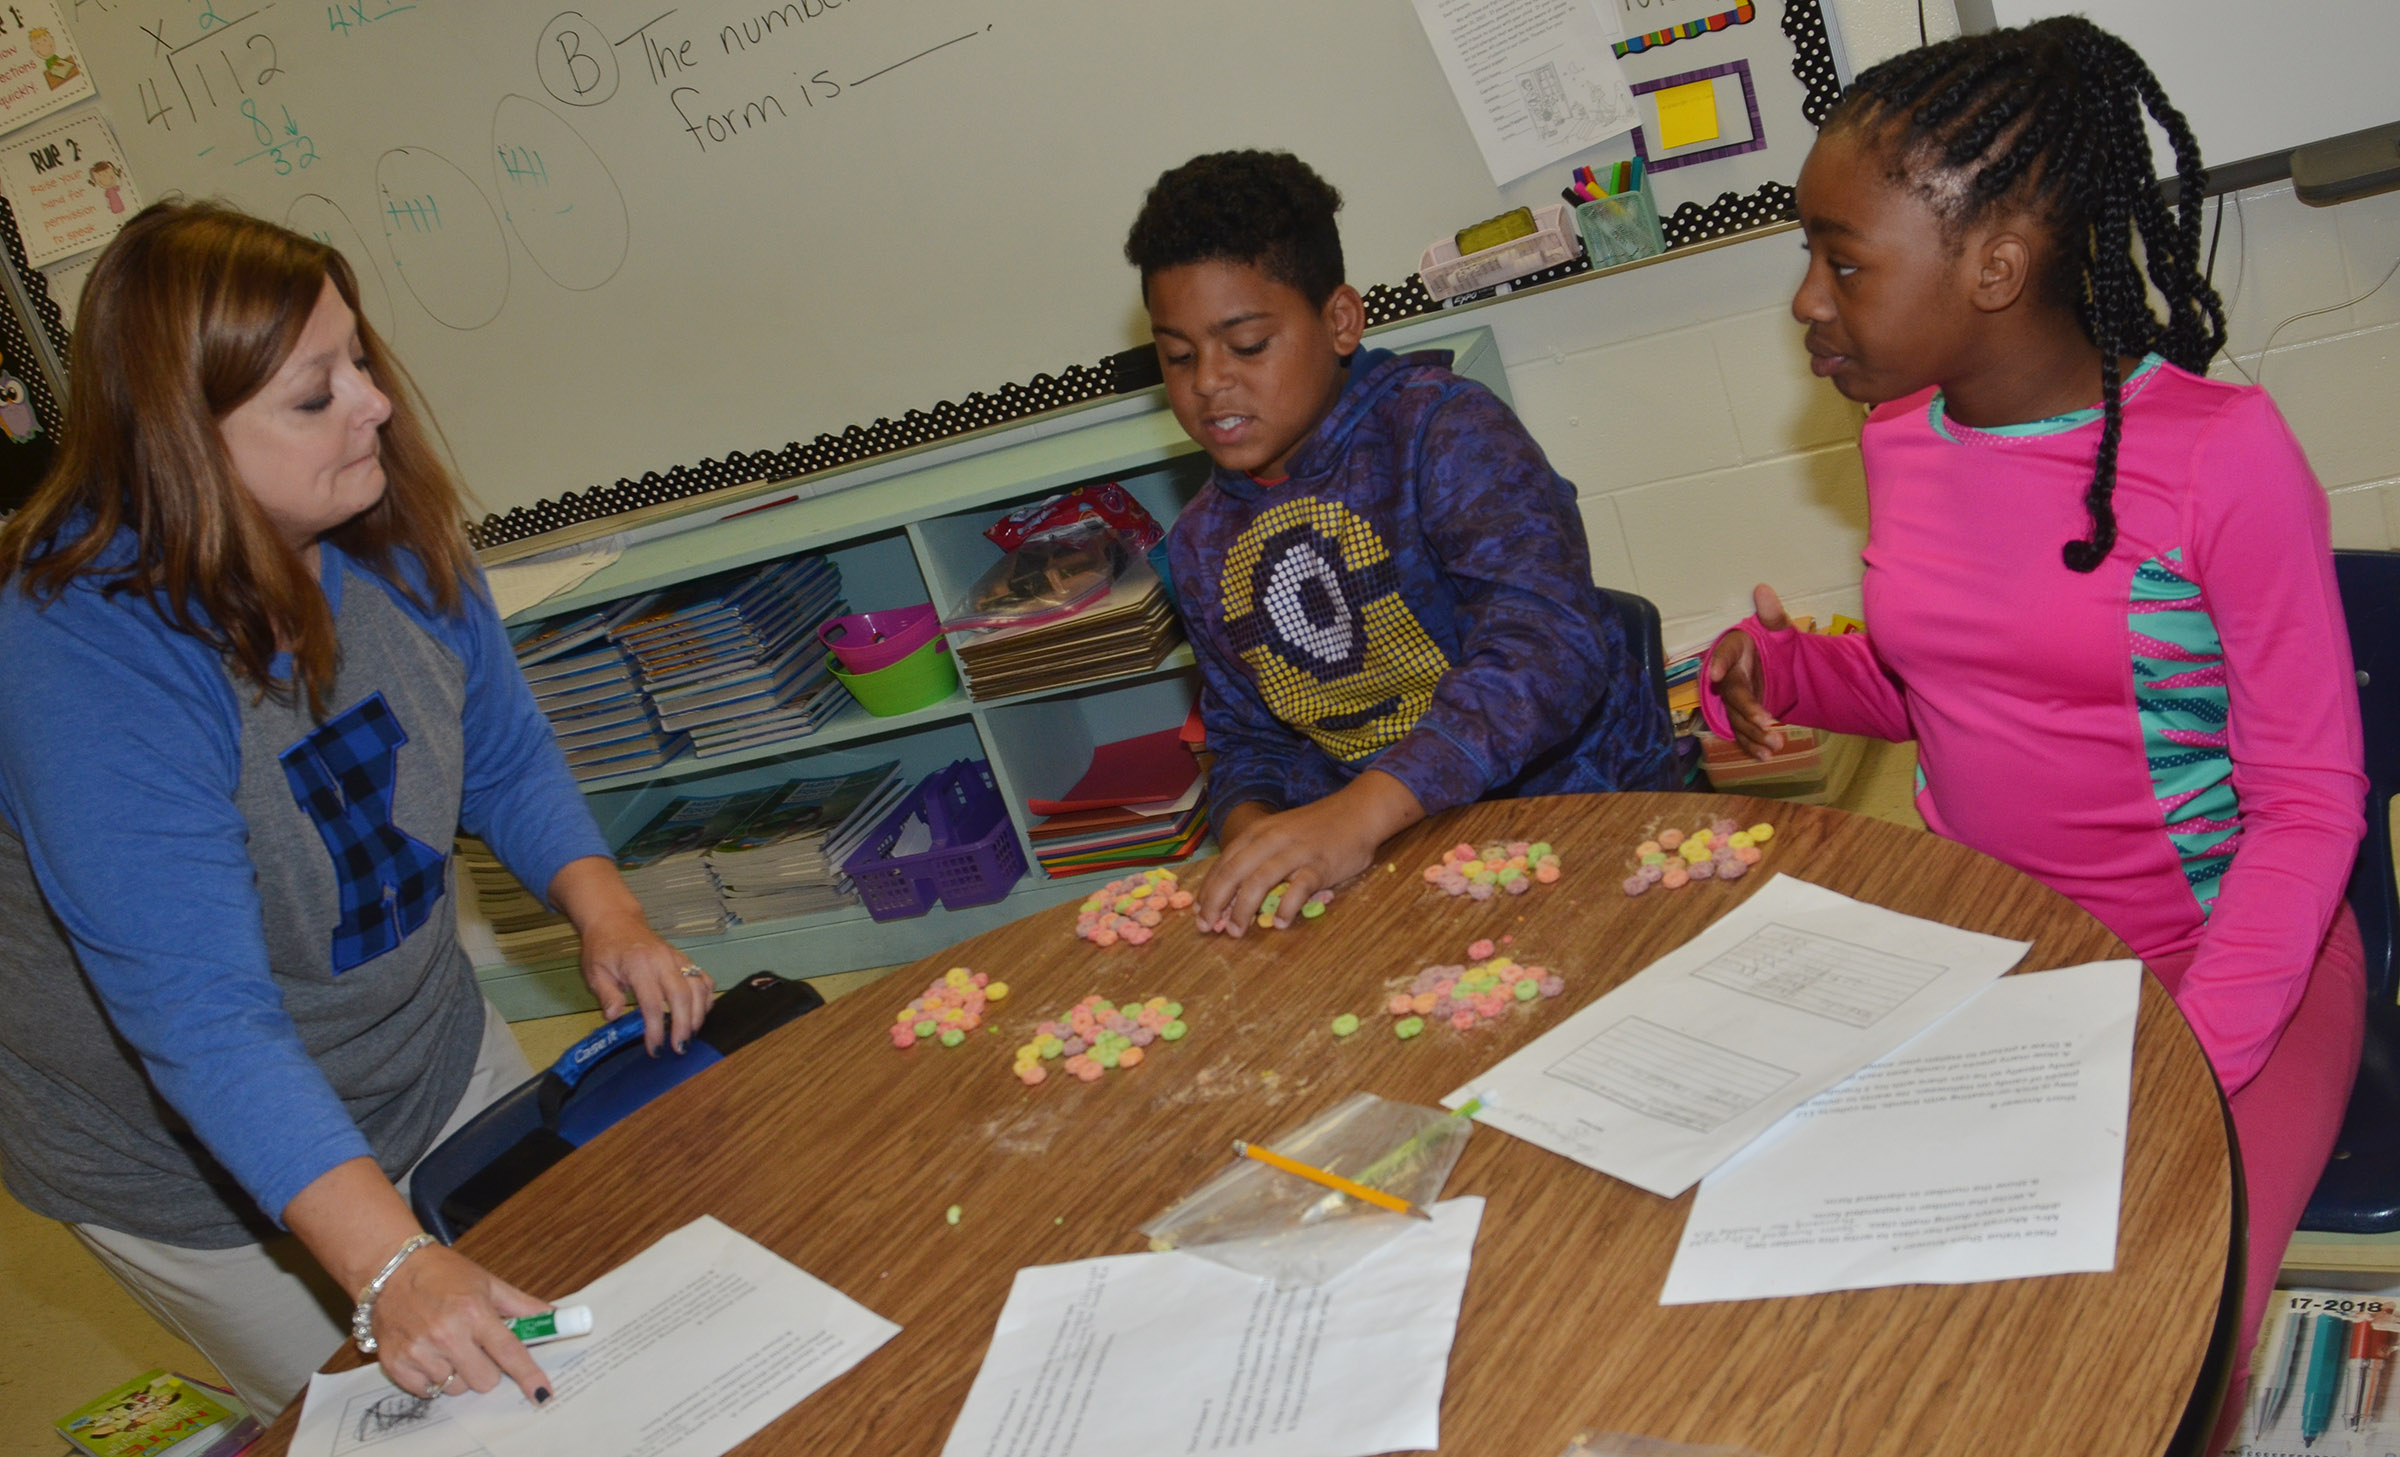 CES fourth-grade math teacher Garnetta Murrell helps students Bryson Groves, center, and Tiffani Gaddie count using pieces of cereal.